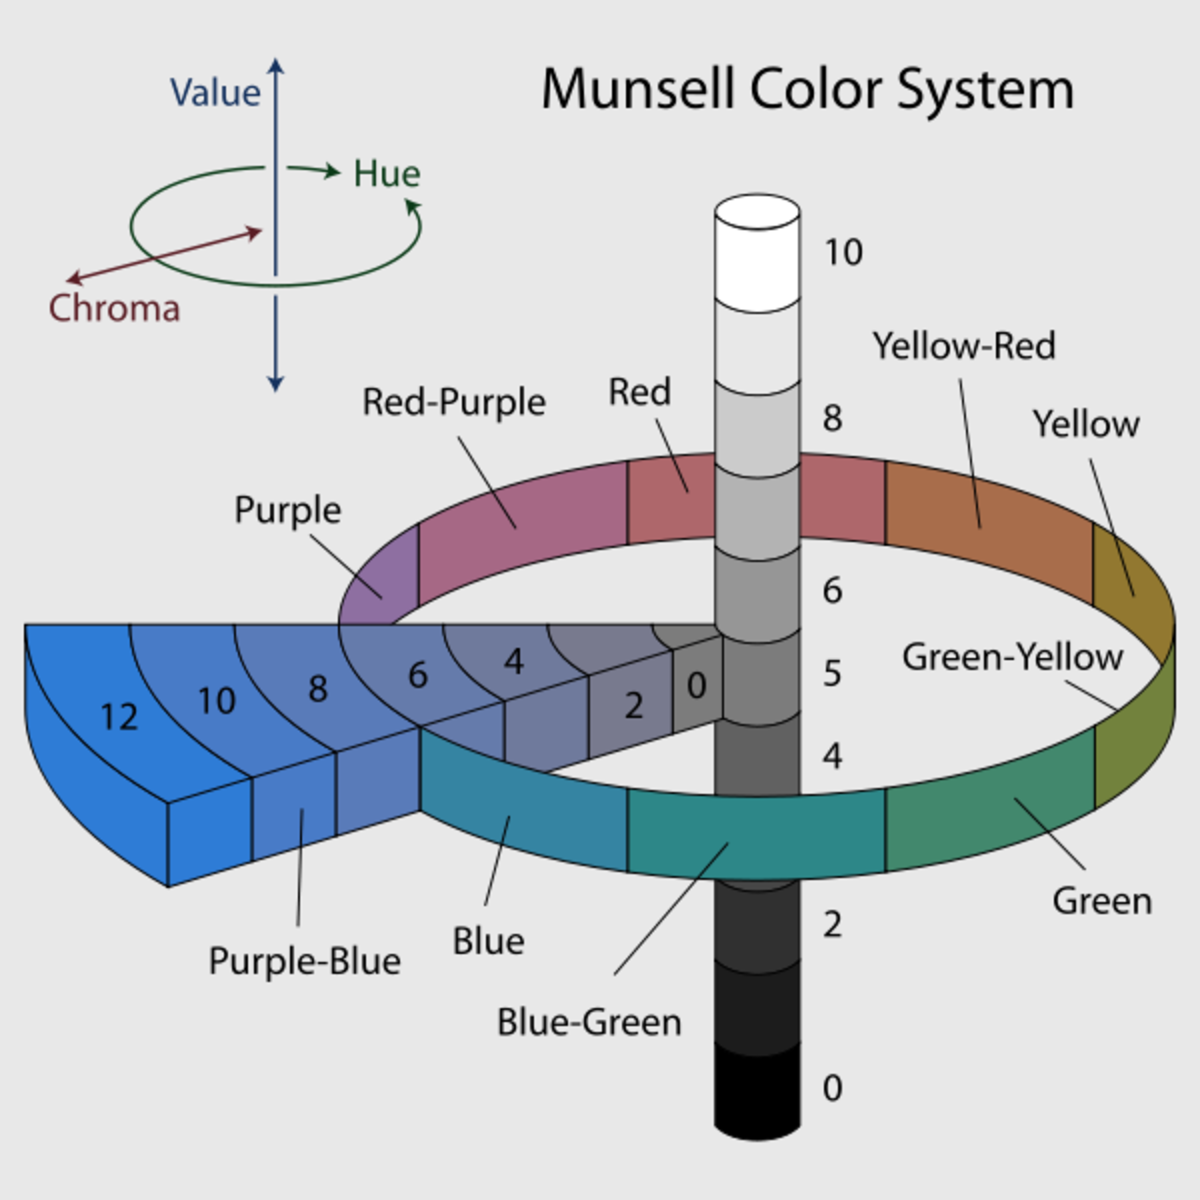 Color Chroma and Color Saturation are not the same. Chroma color is the measurement of how pure a Hue is in relationship to gray. Color Saturation is simply the degree of purity of a Hue.